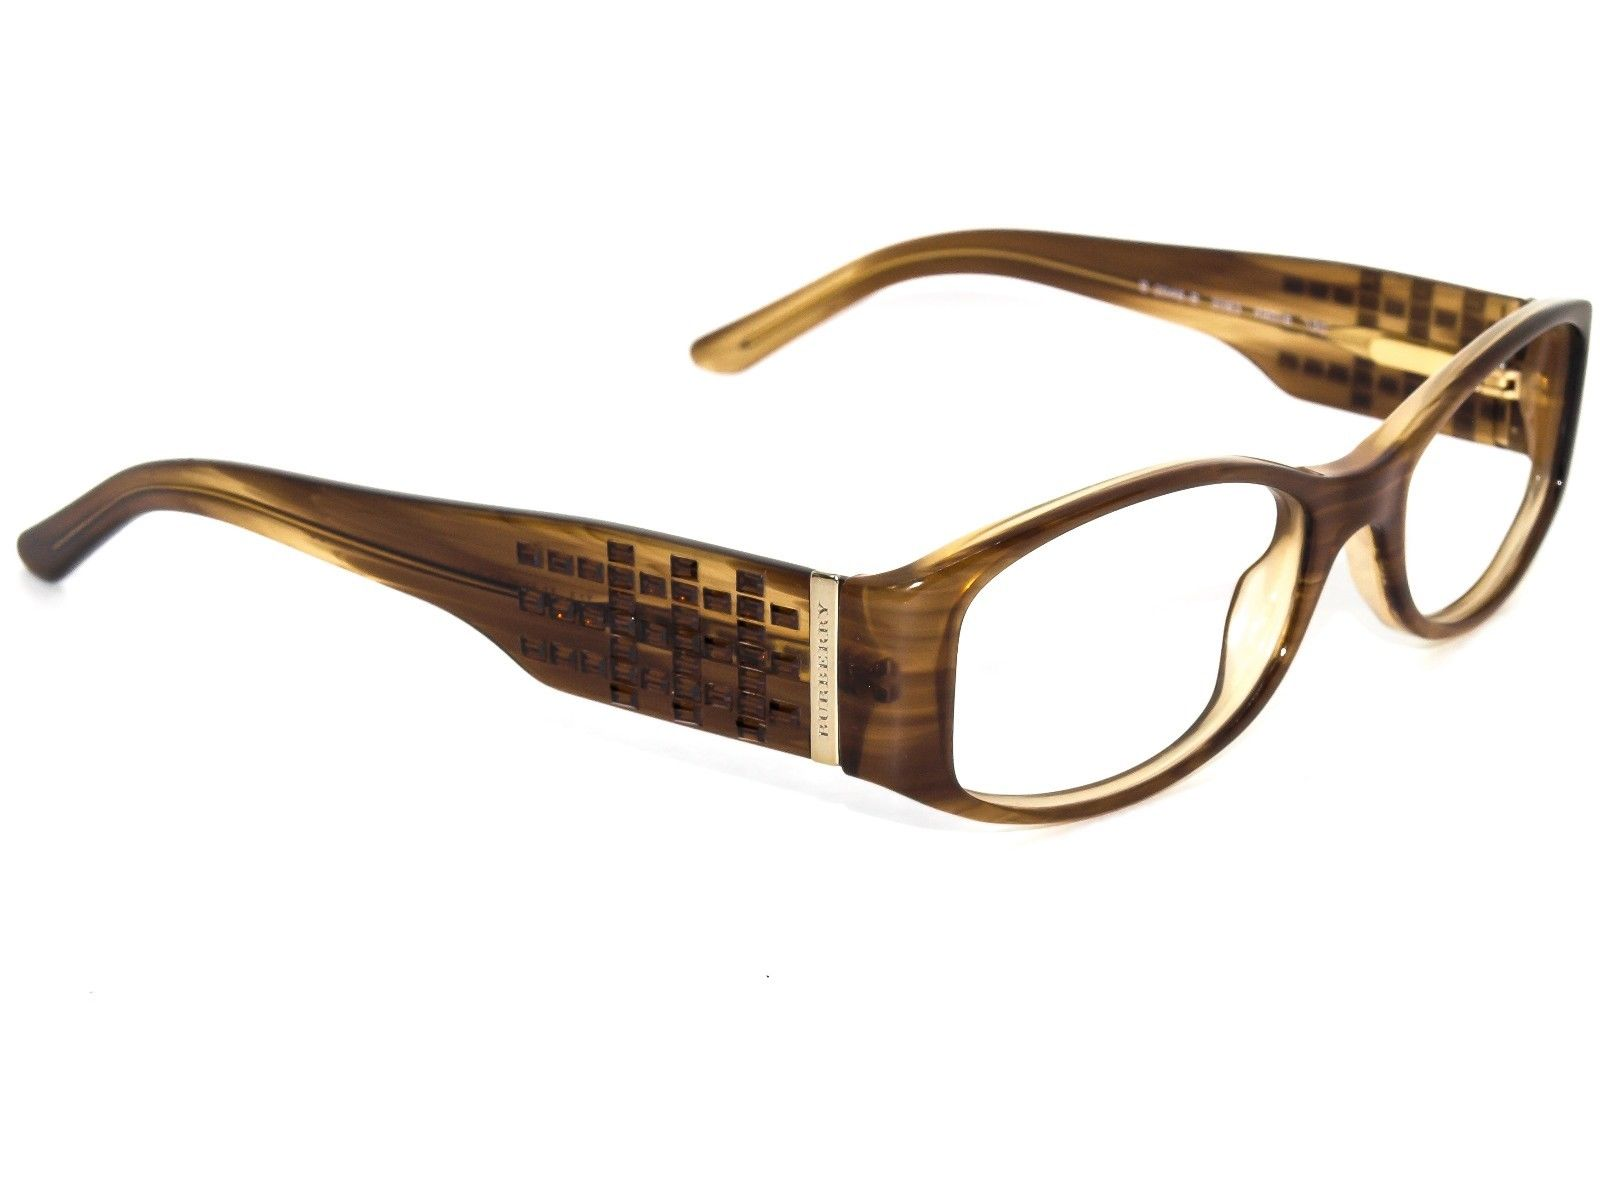 Burberry B 2046 3083 Eyeglasses